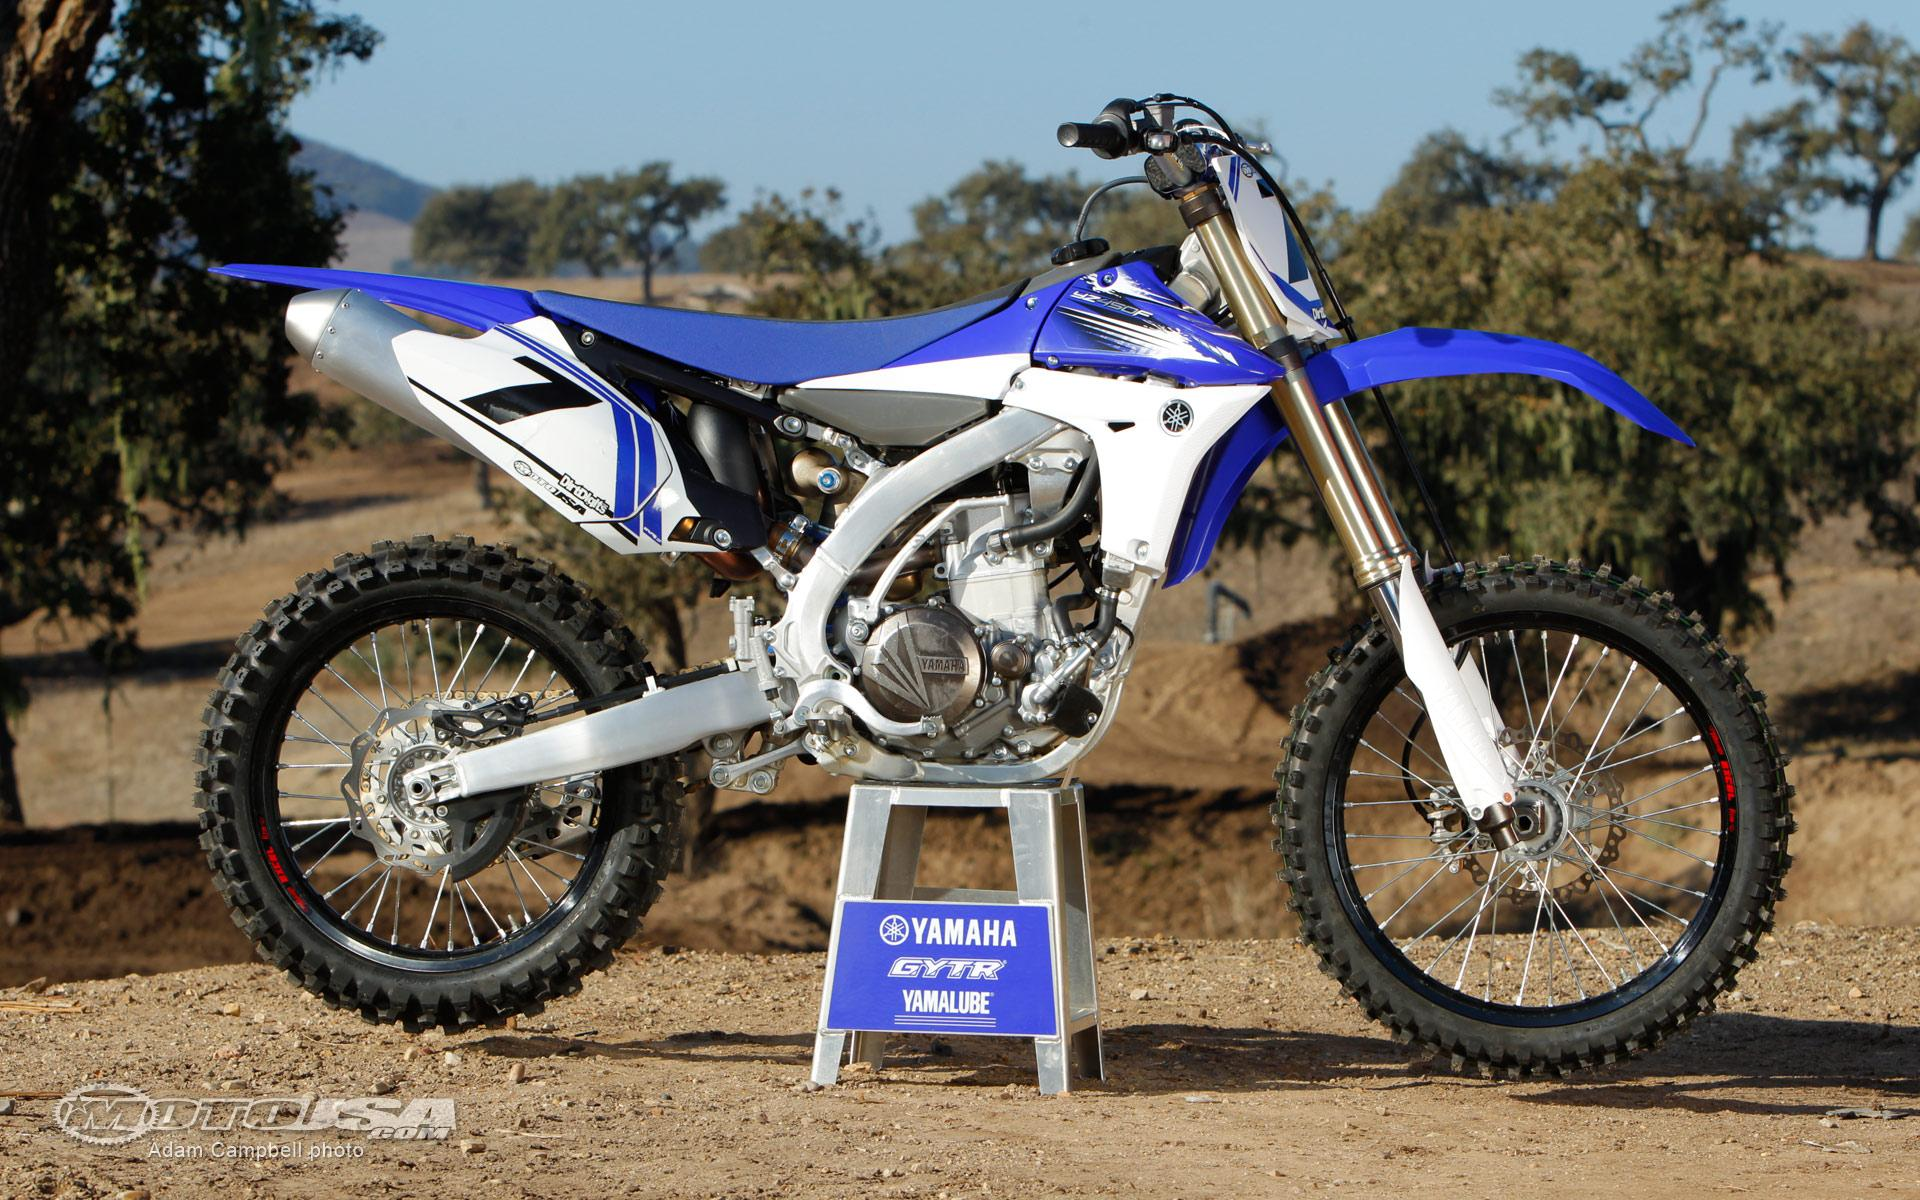 Yamaha dirt bike wallpaper wallpapersafari for Yamaha mini dirt bikes